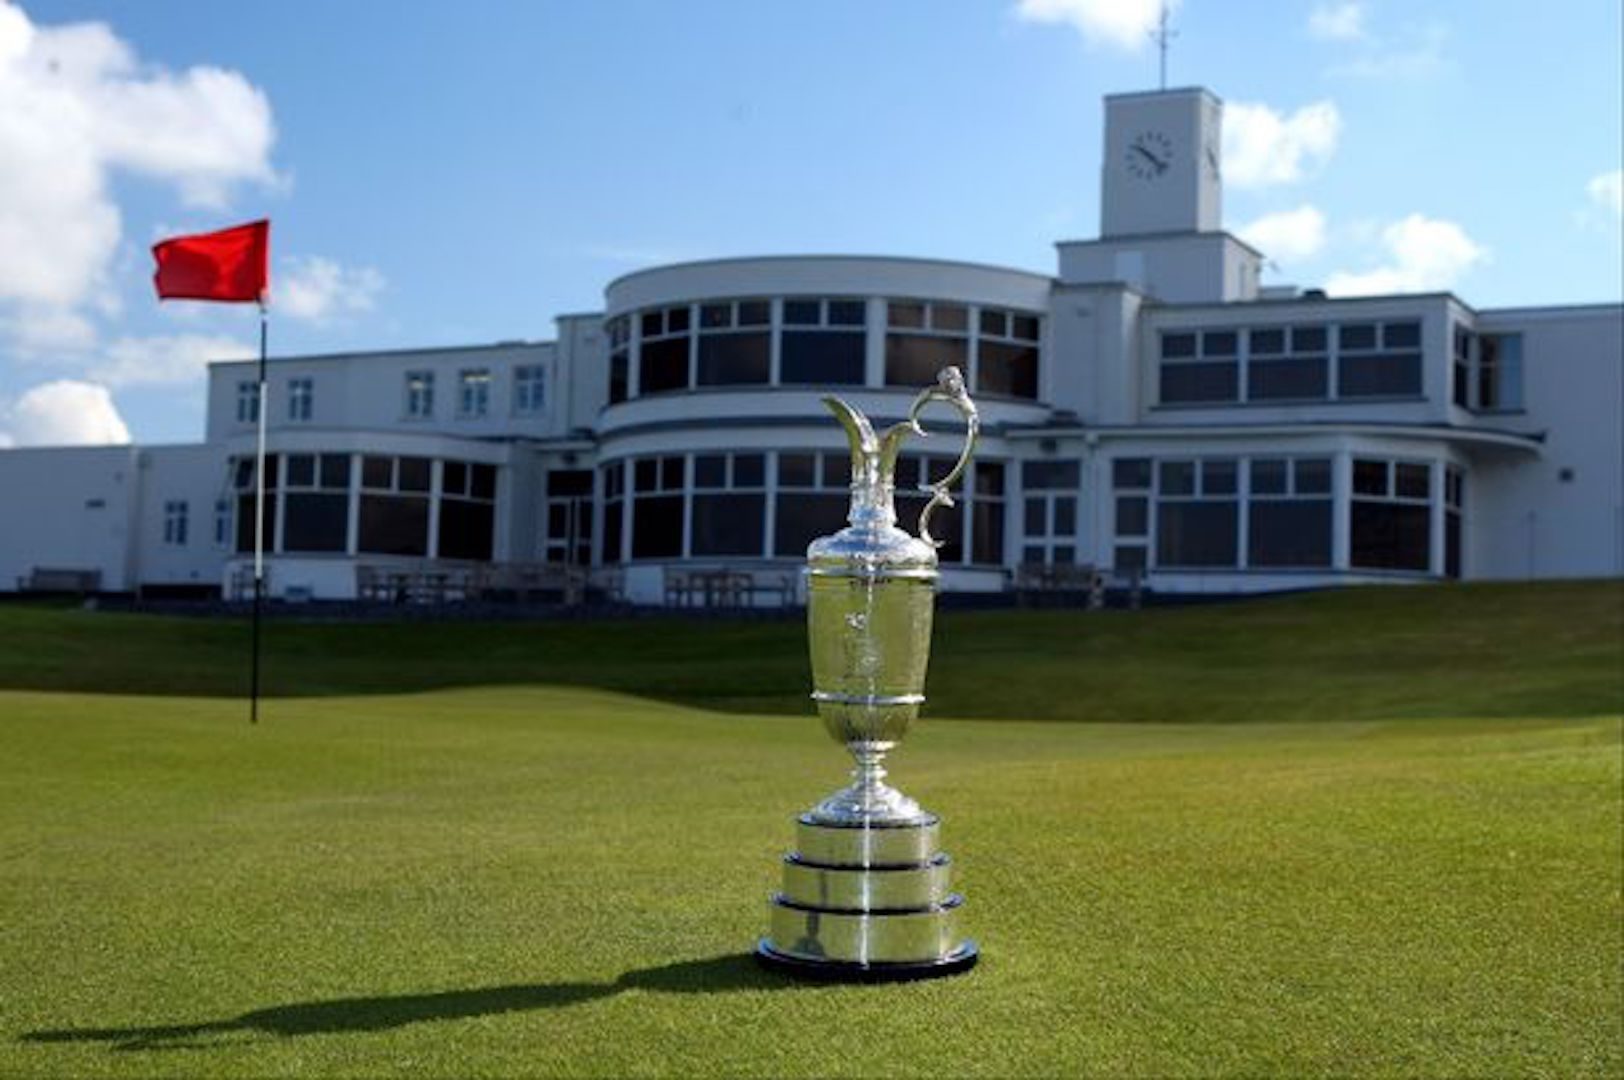 Twitter bidding for USPGA rights